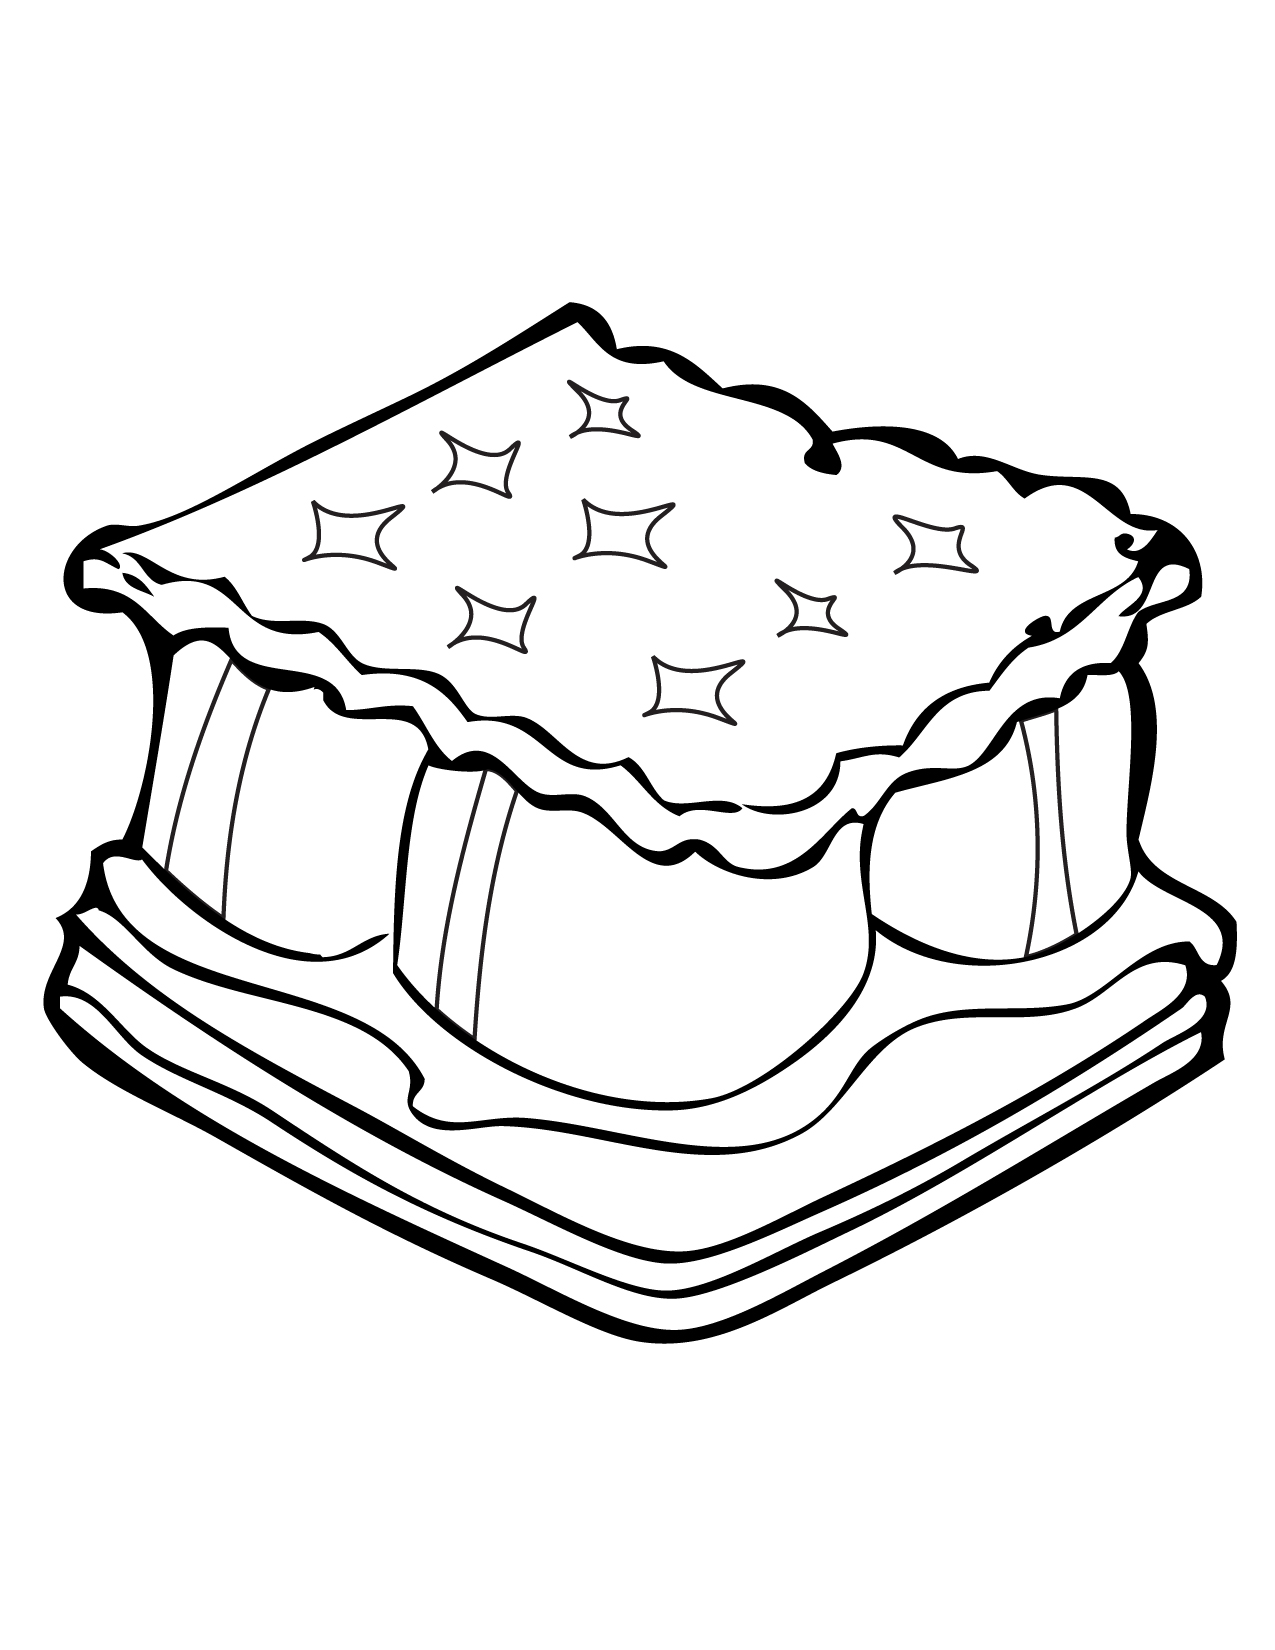 smores - Camping Coloring Pages